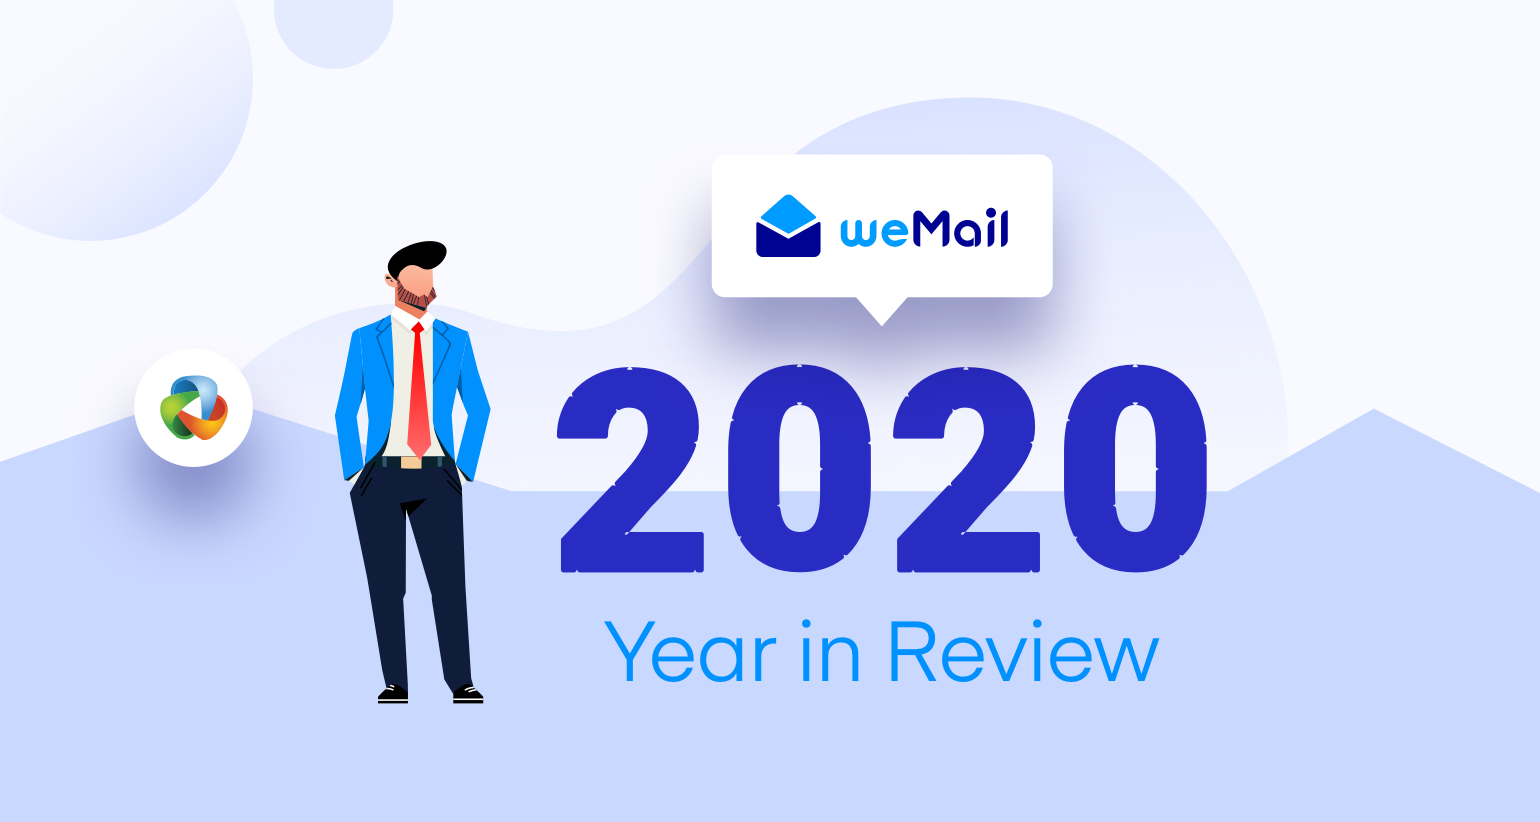 weMail year in review 2020